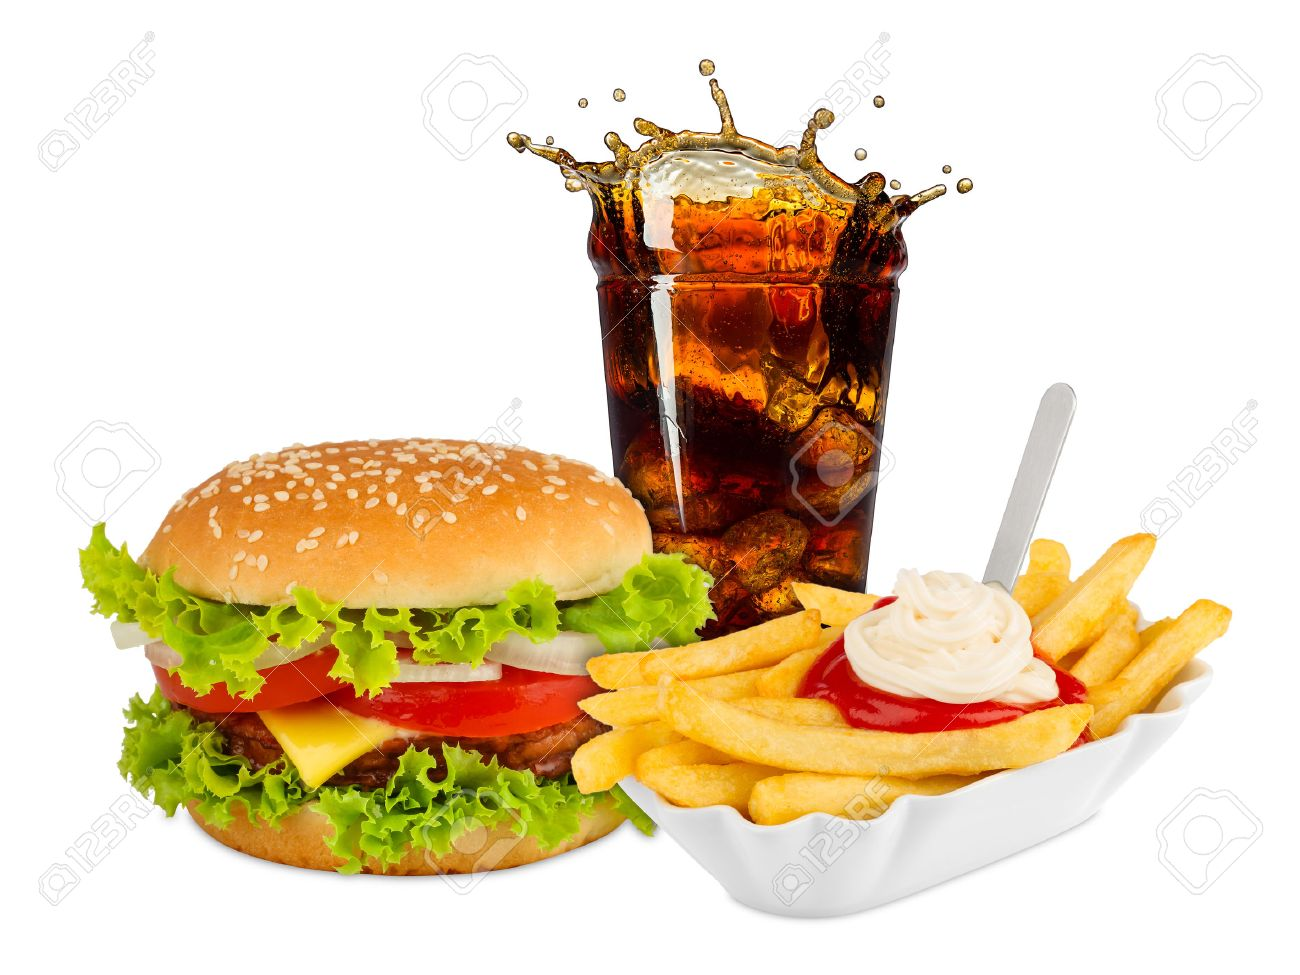 Fast food meal on white background - 40558742